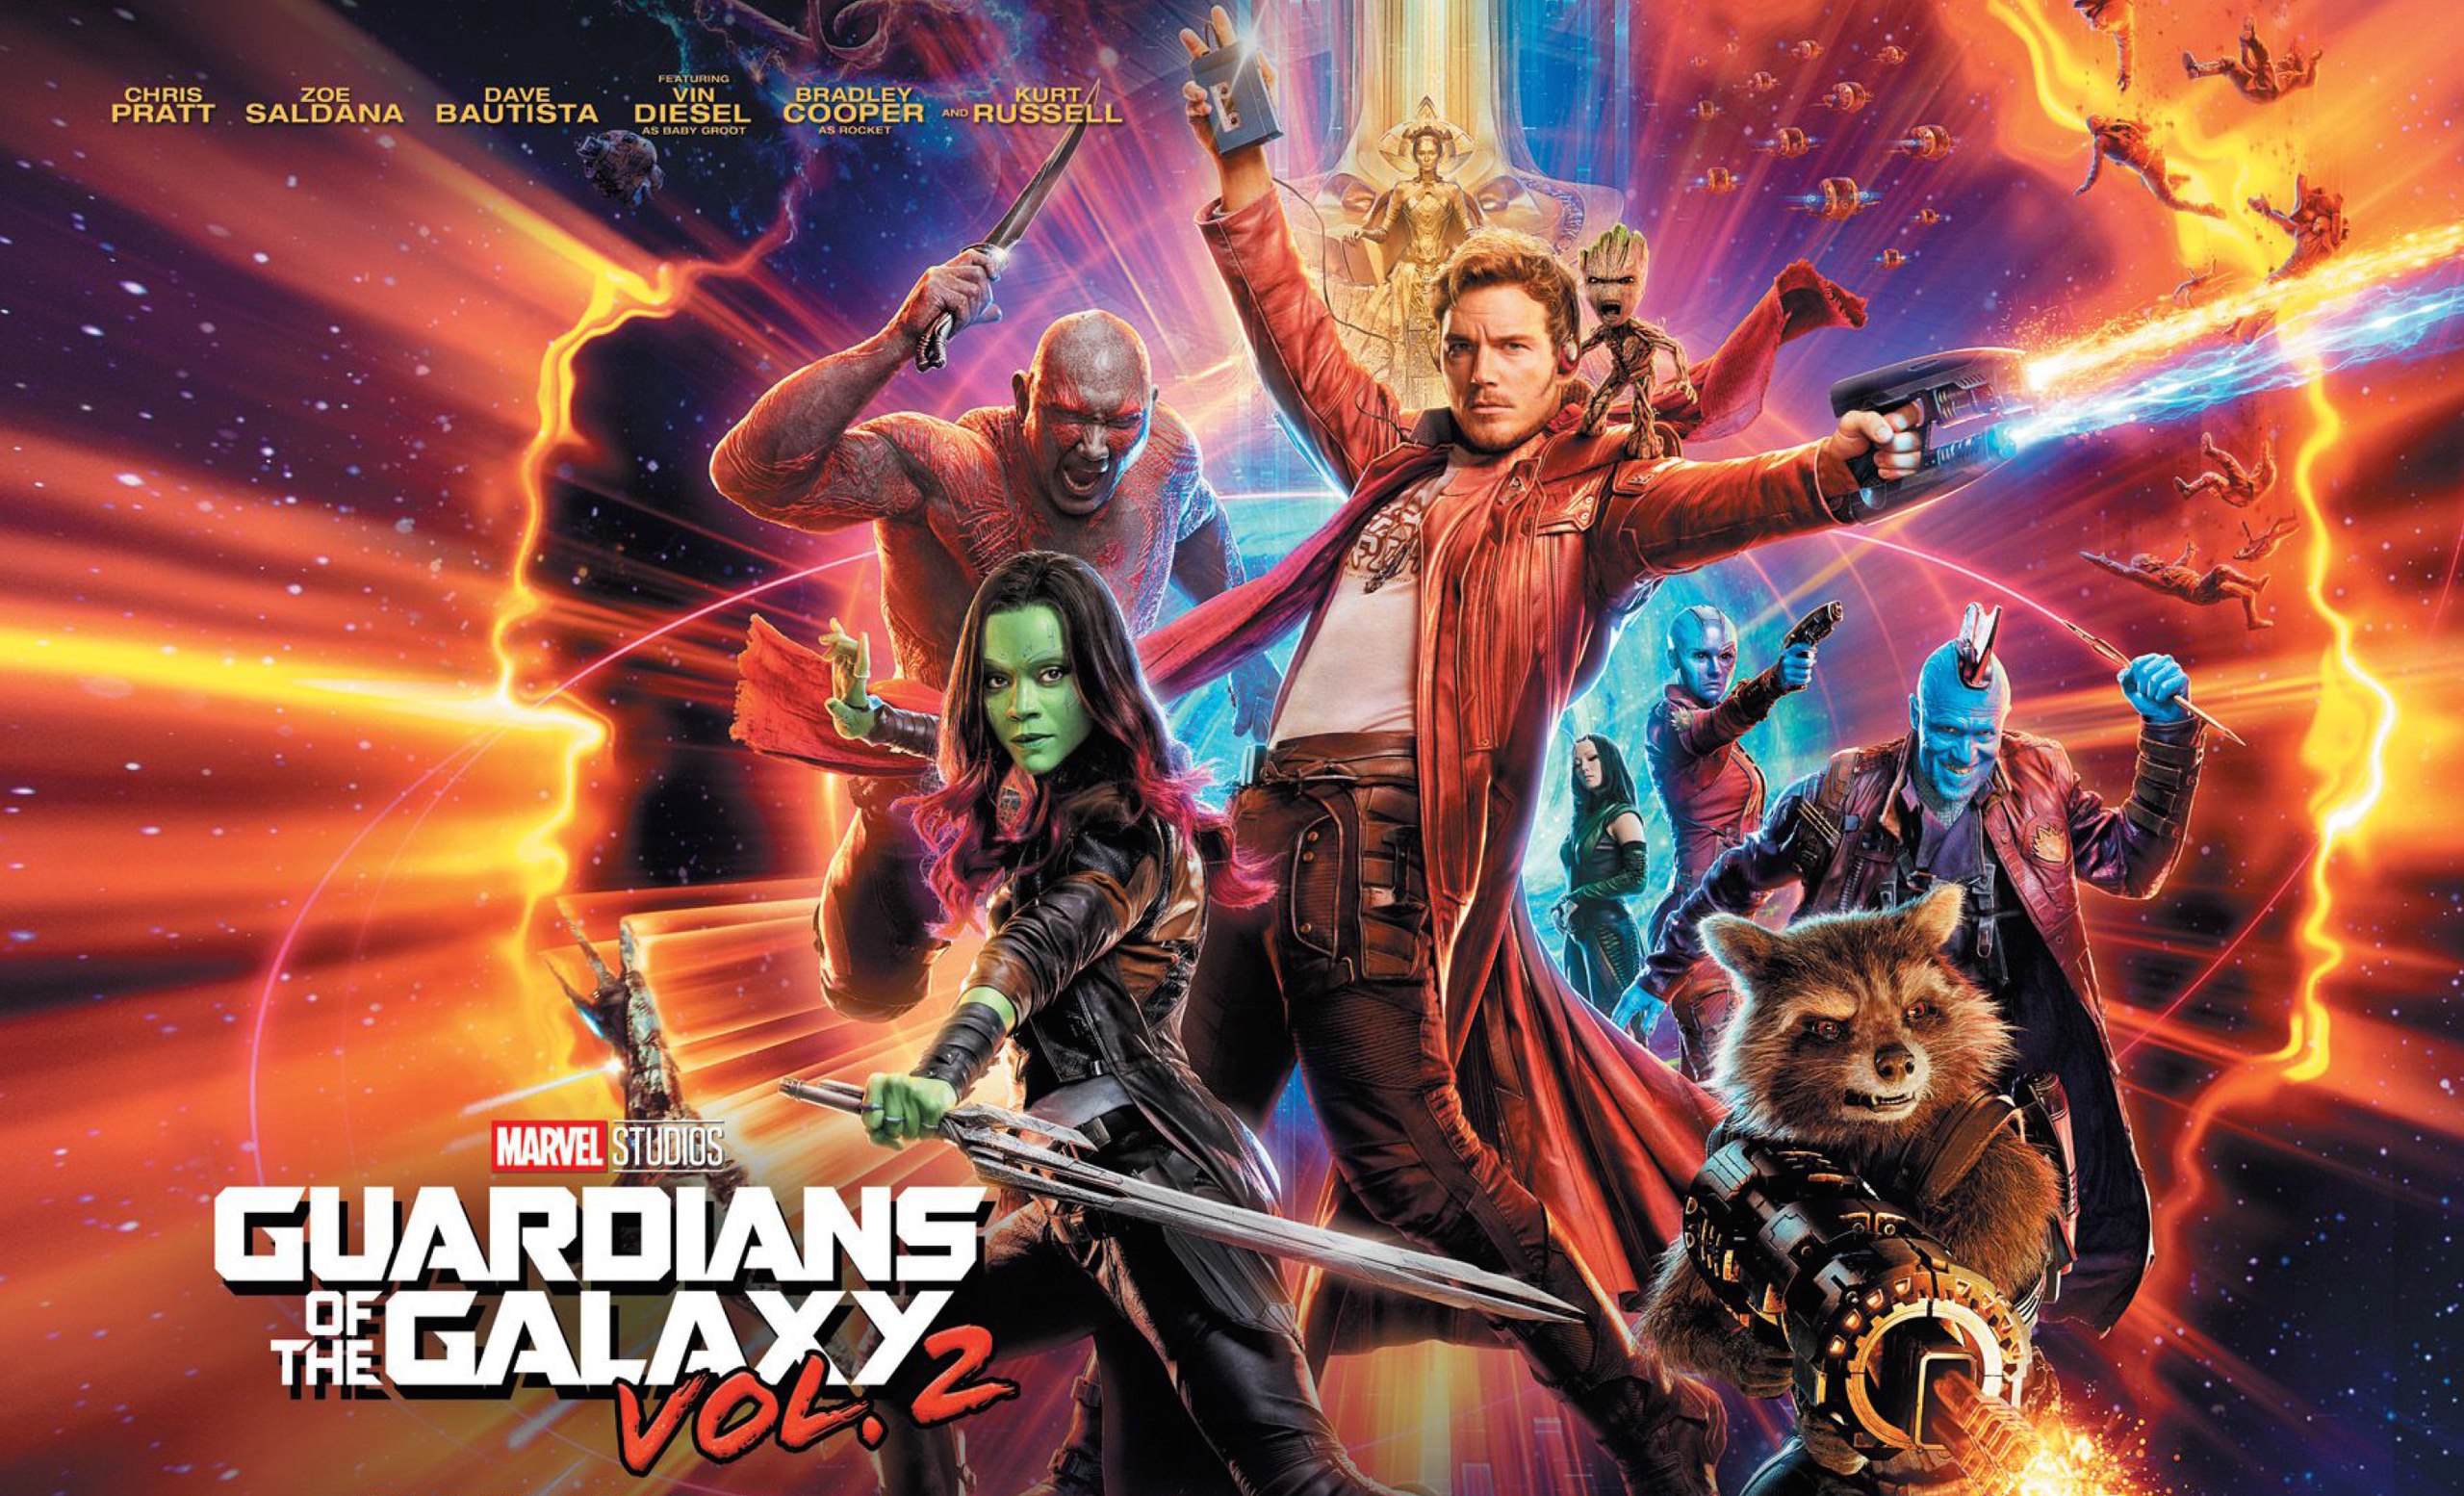 Guardians-of-the-Galaxy-Vol-2-banner